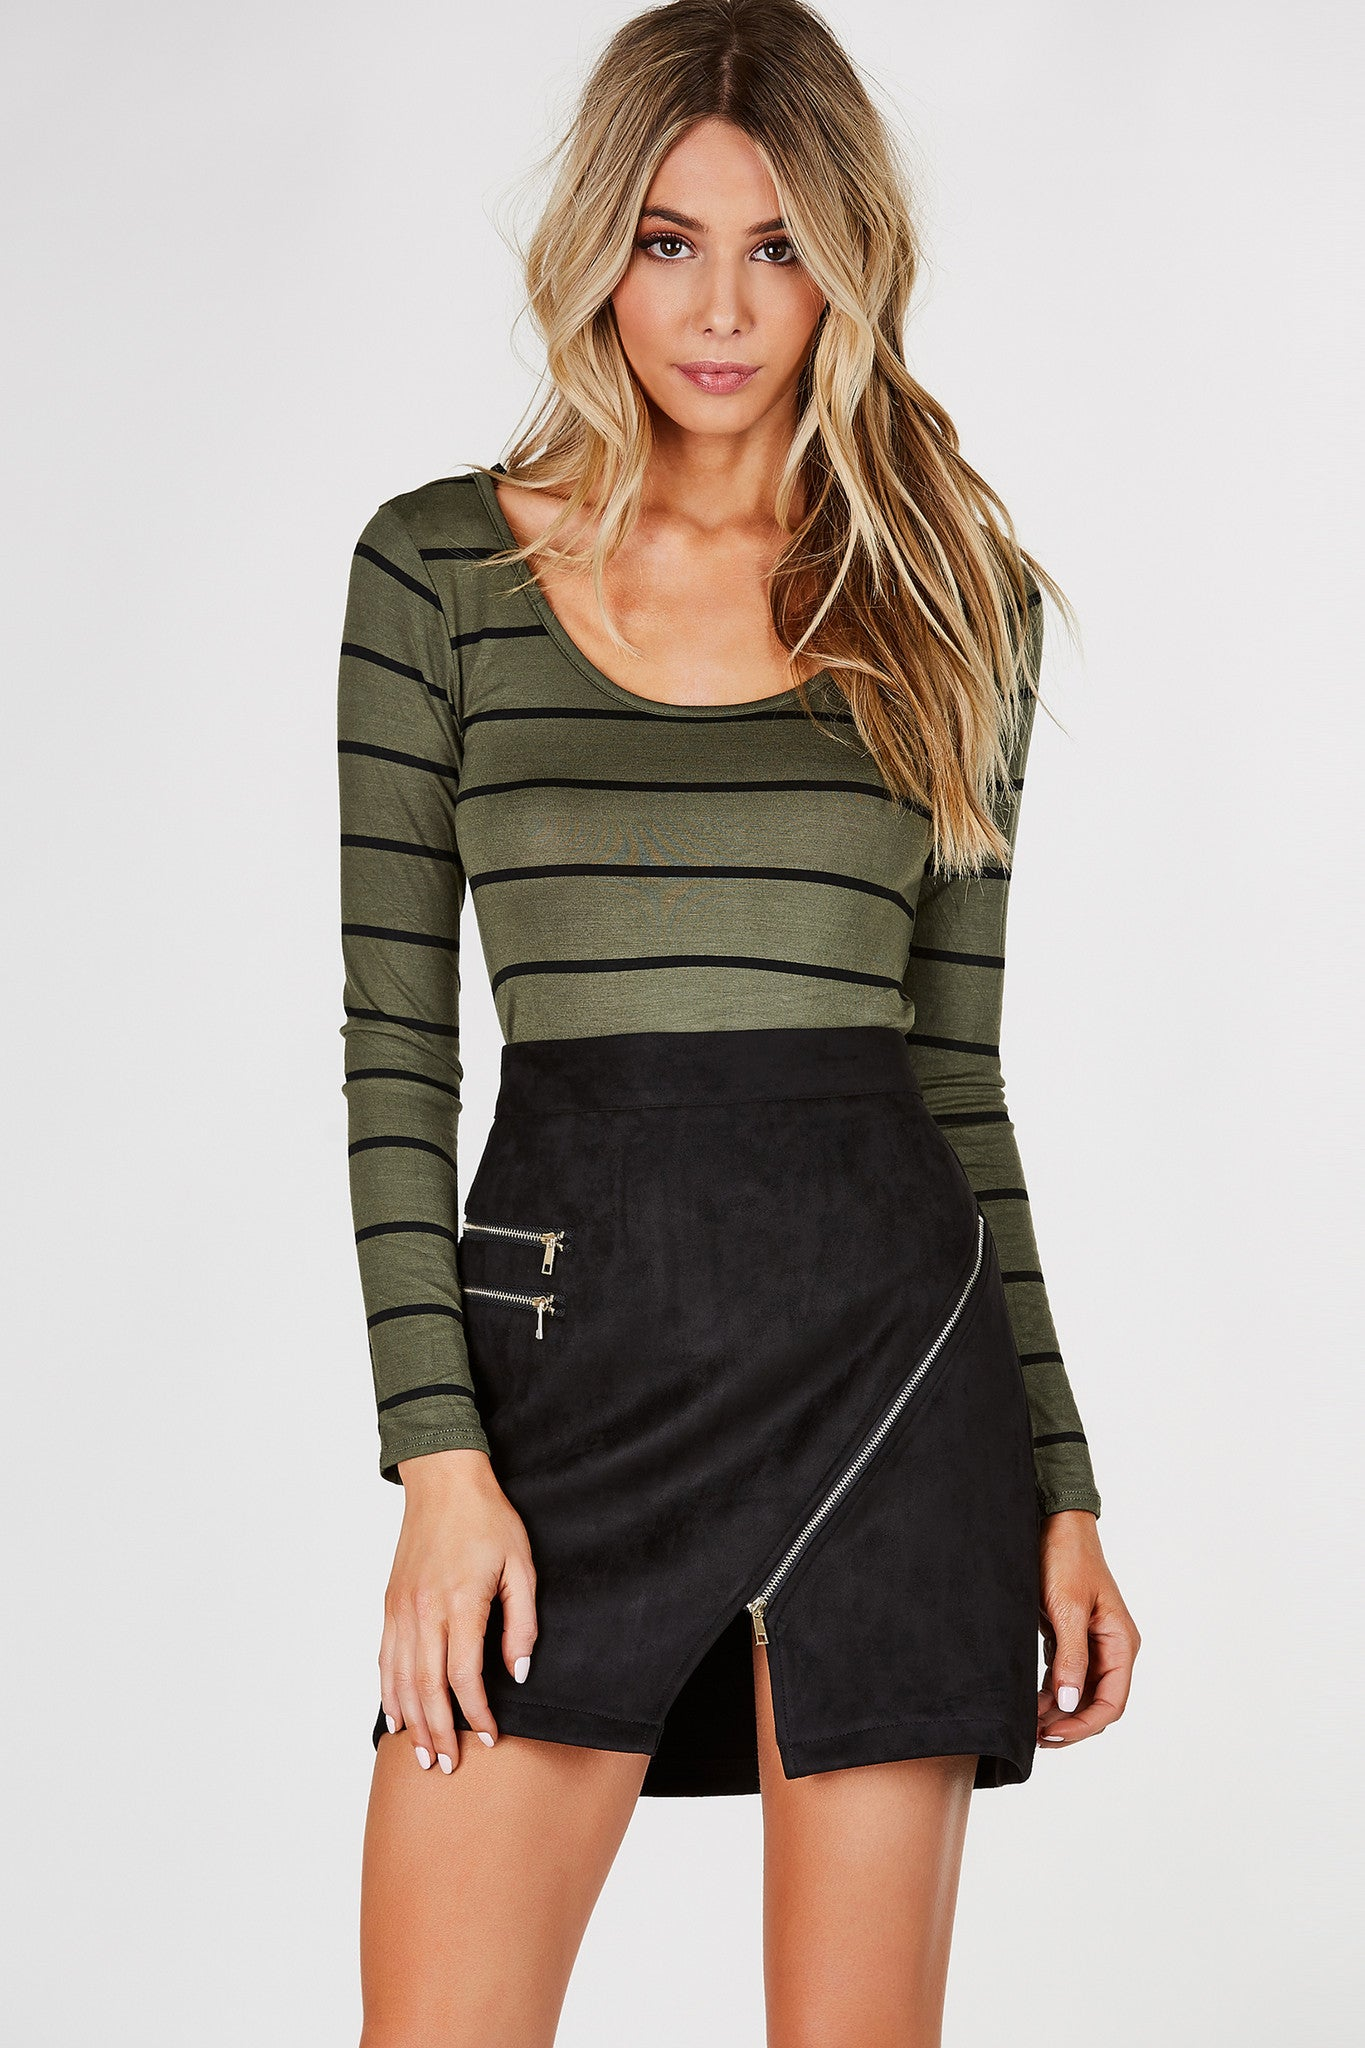 Round neck long sleeve top with stripe patterns through out. V-shape back with strappy detailing with rounded hem.